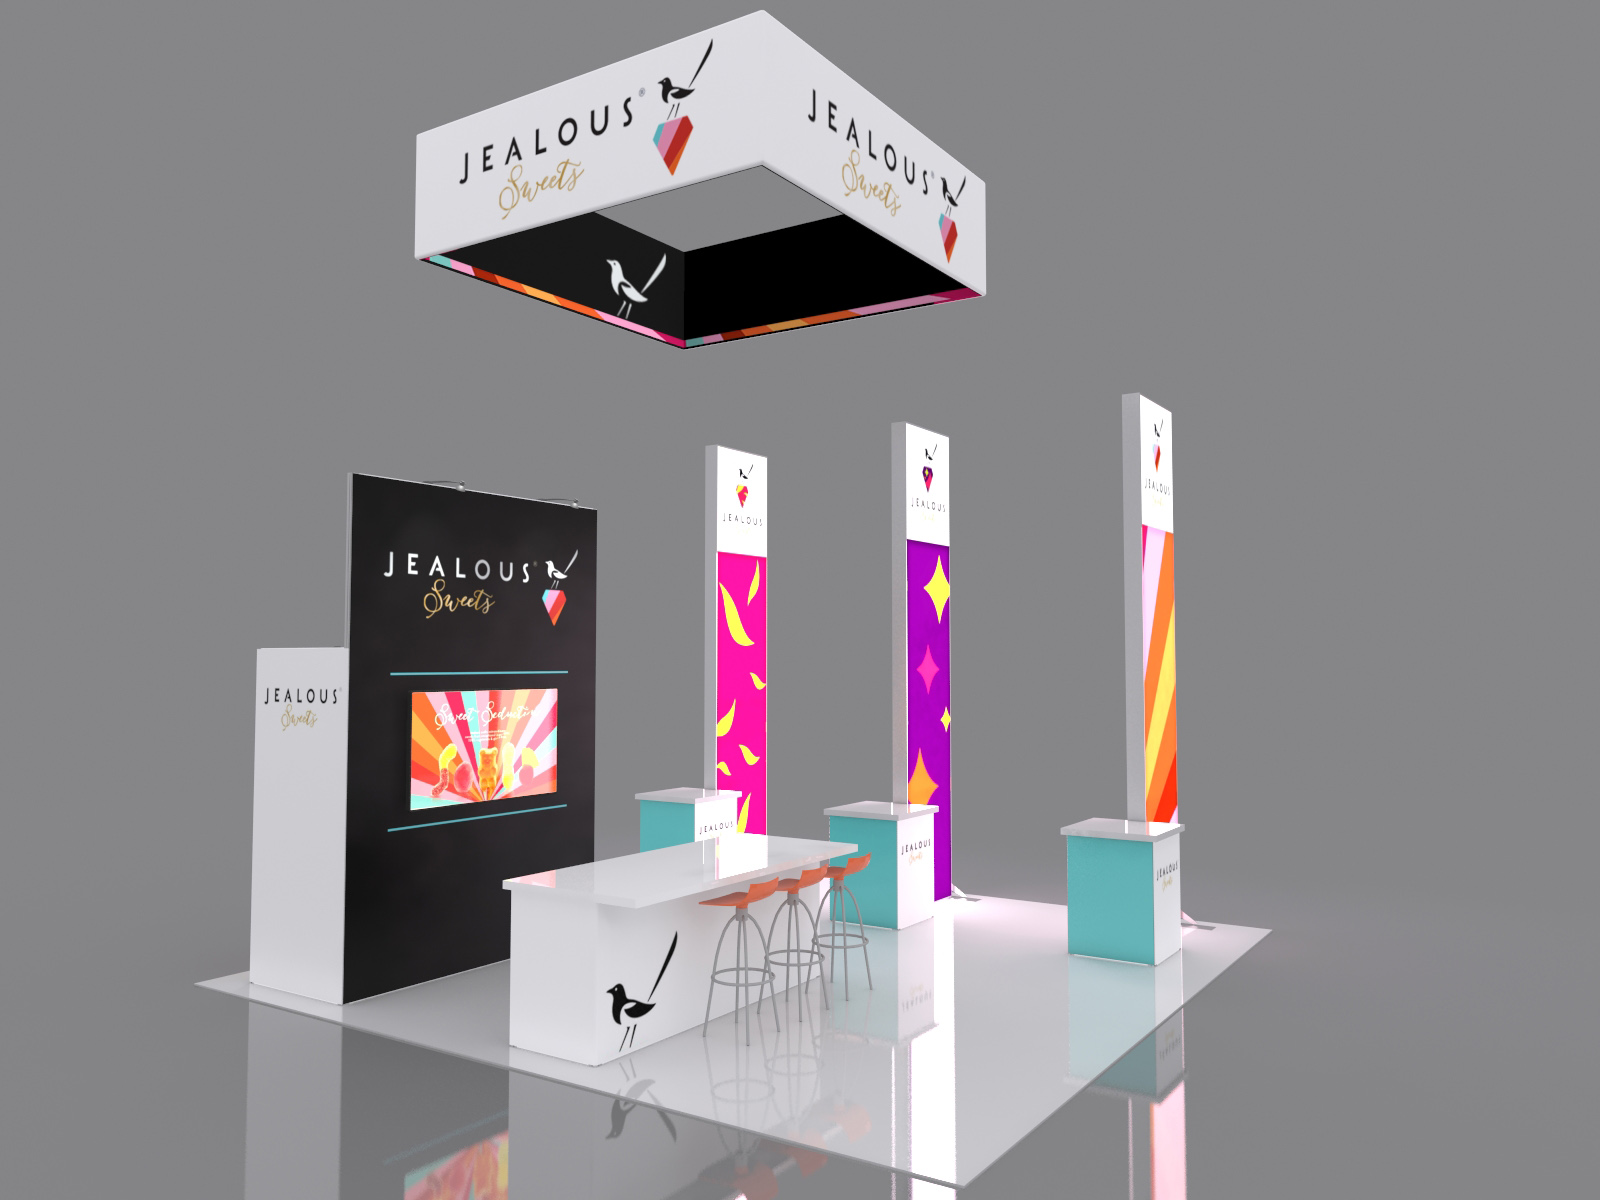 20x20-trade-show-booth-rental-9